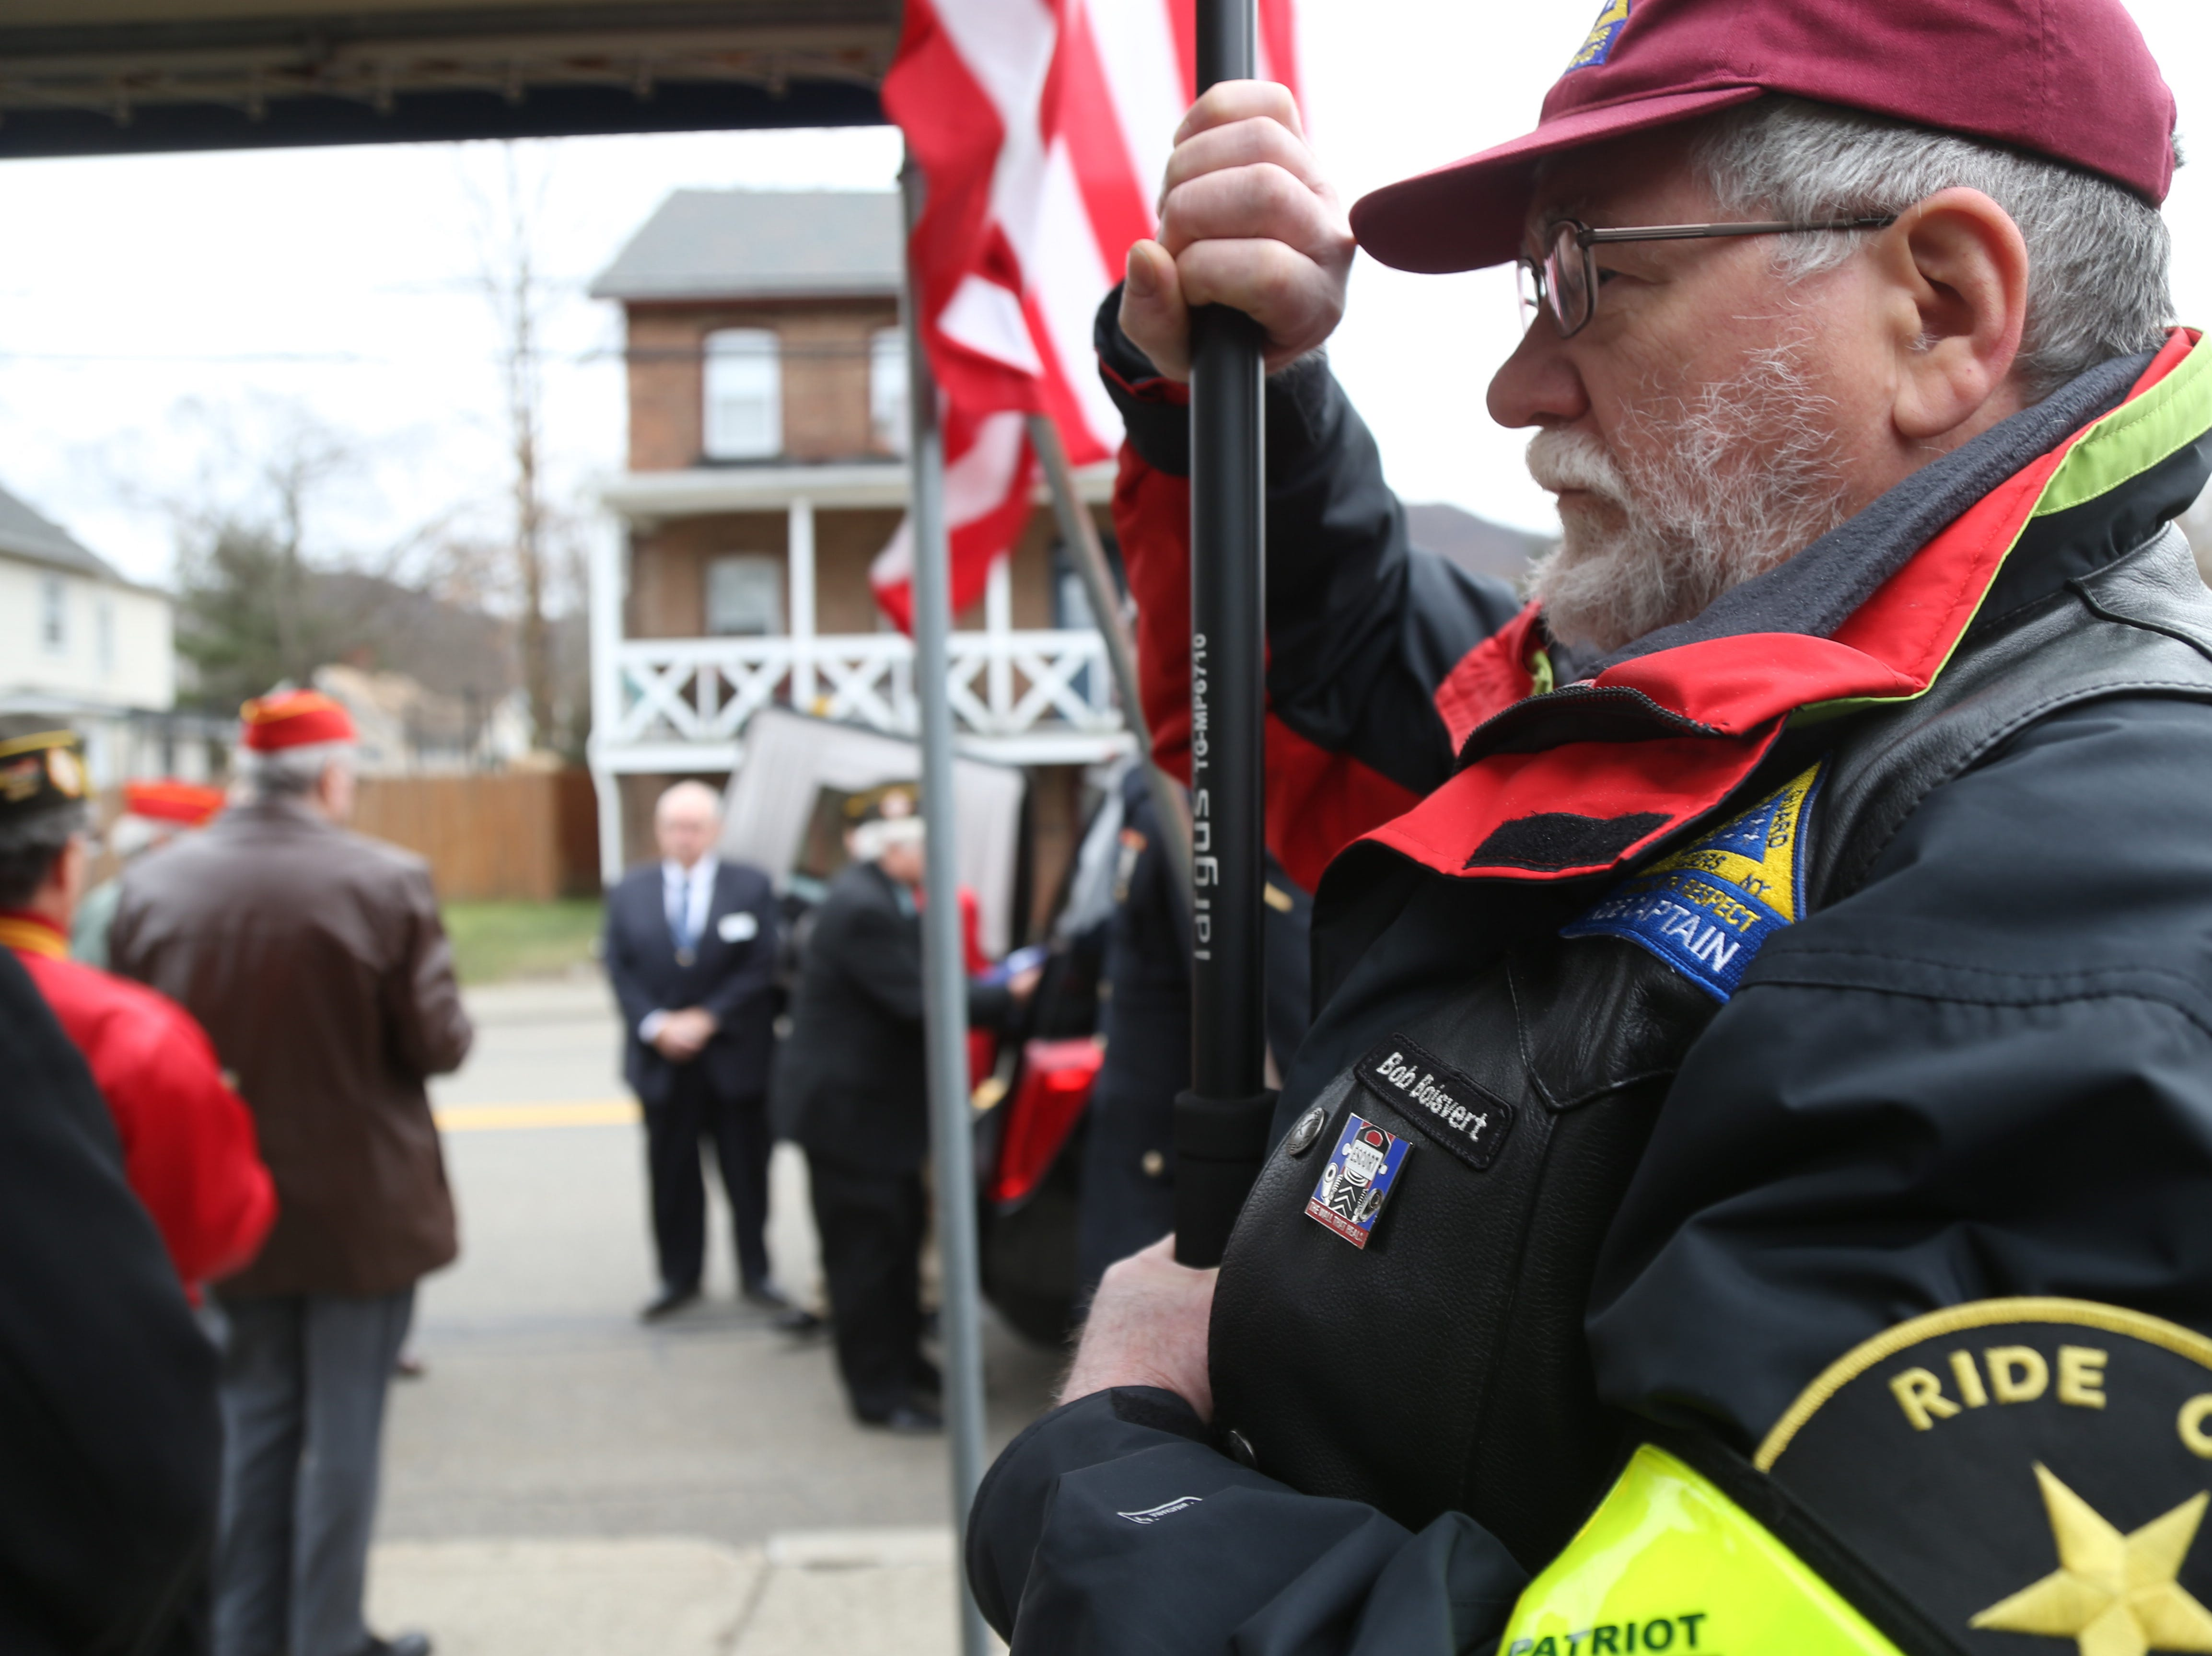 Patriot Guard captain Bob Boisvert astand in attendance of Thursday's memorial service for four veterans at Libby Funeral Home in Beacon on January 10, 2019. The Patriot Guard accompanied the cremains on their way to Calverton National Cemetery on Long Island.